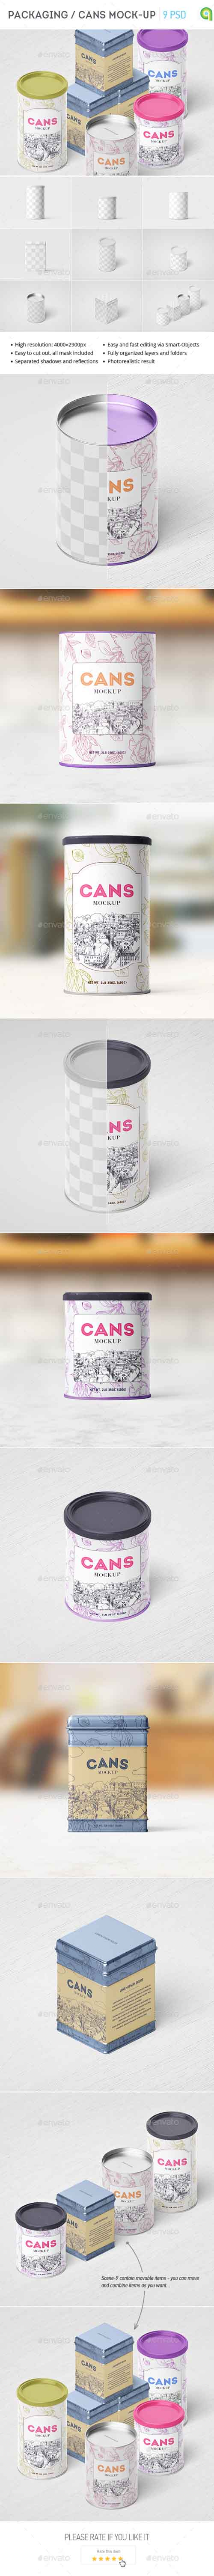 Packaging / Can Mockup 15375171